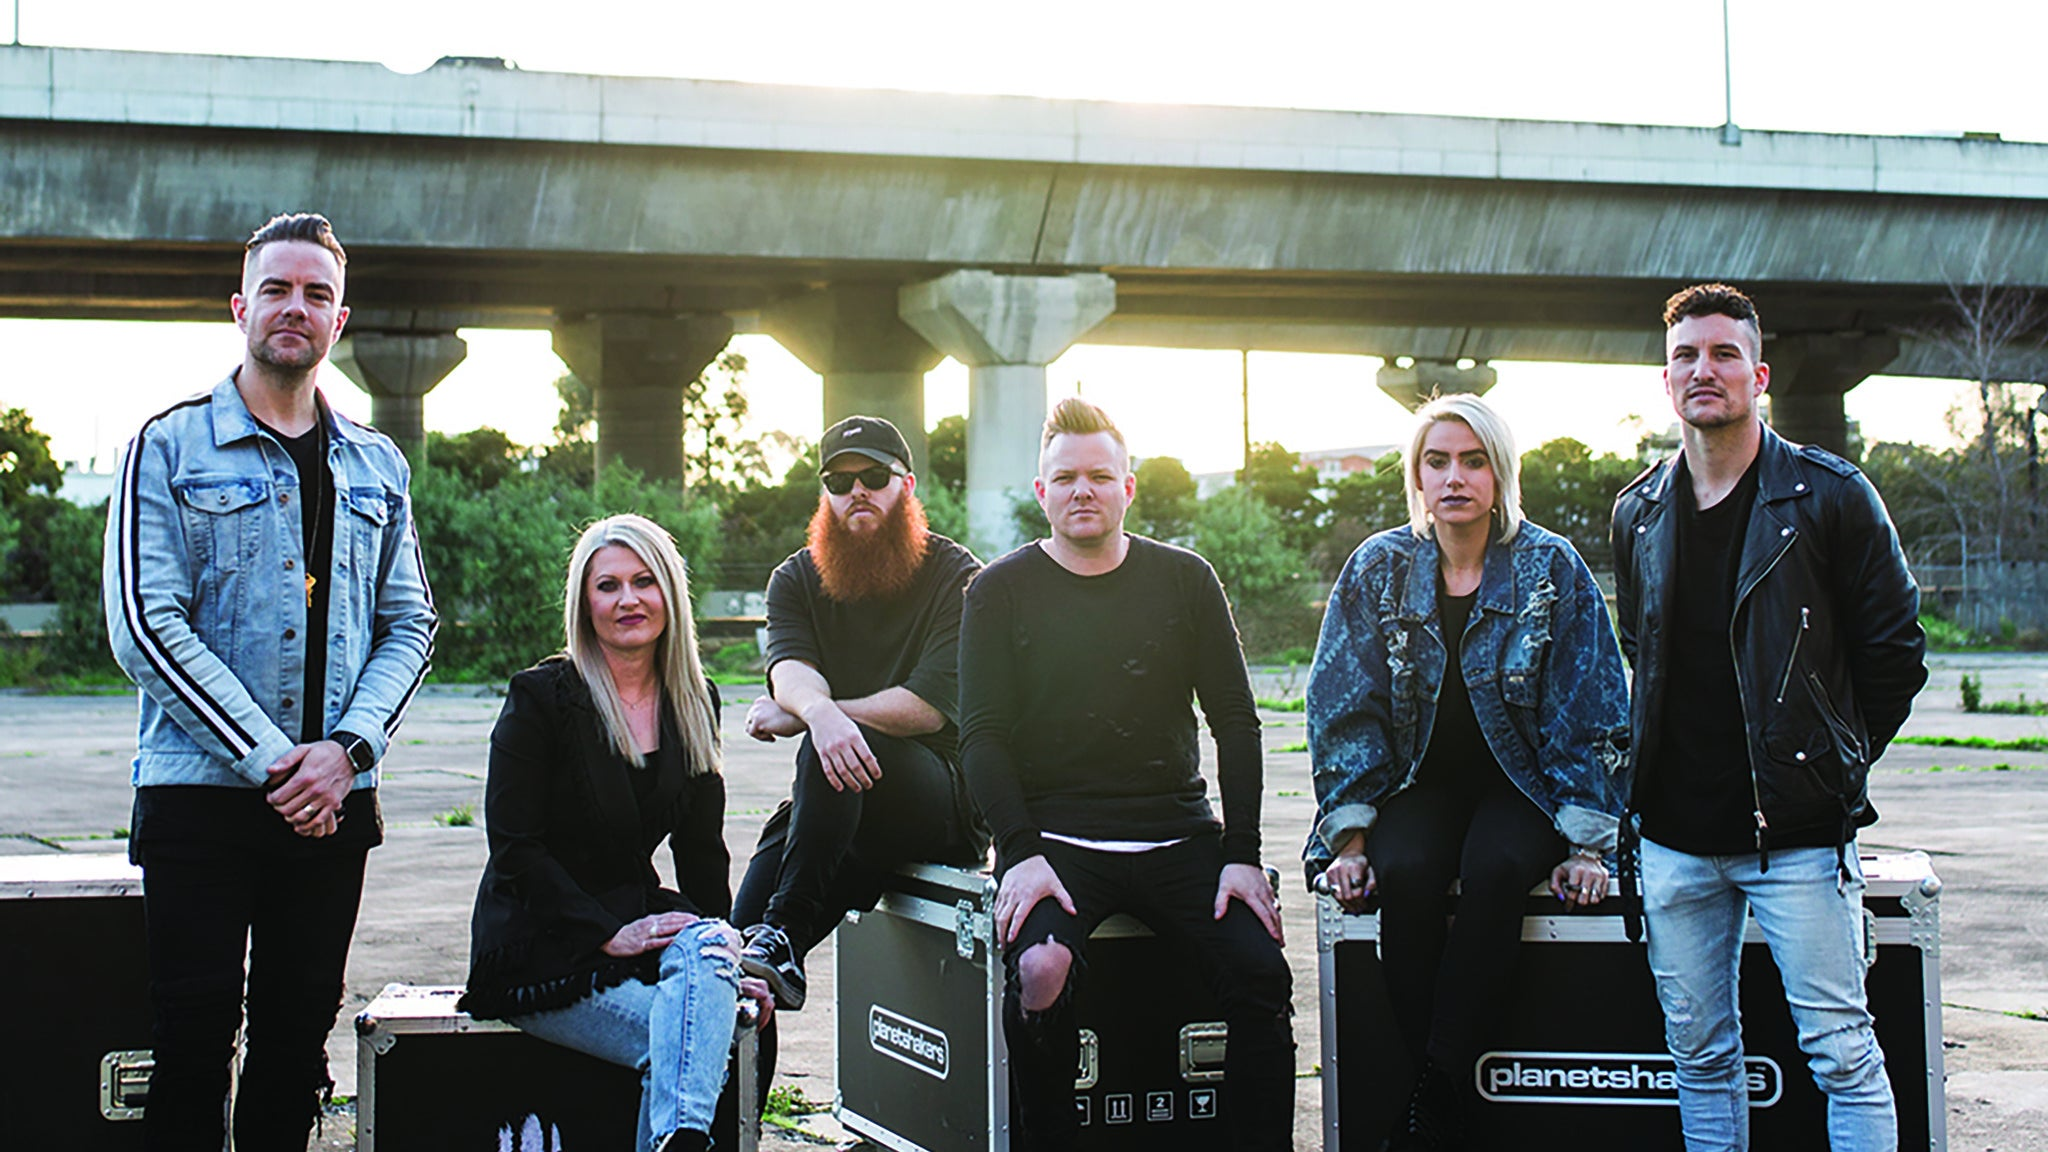 Real Media Group Presents: Planetshakers